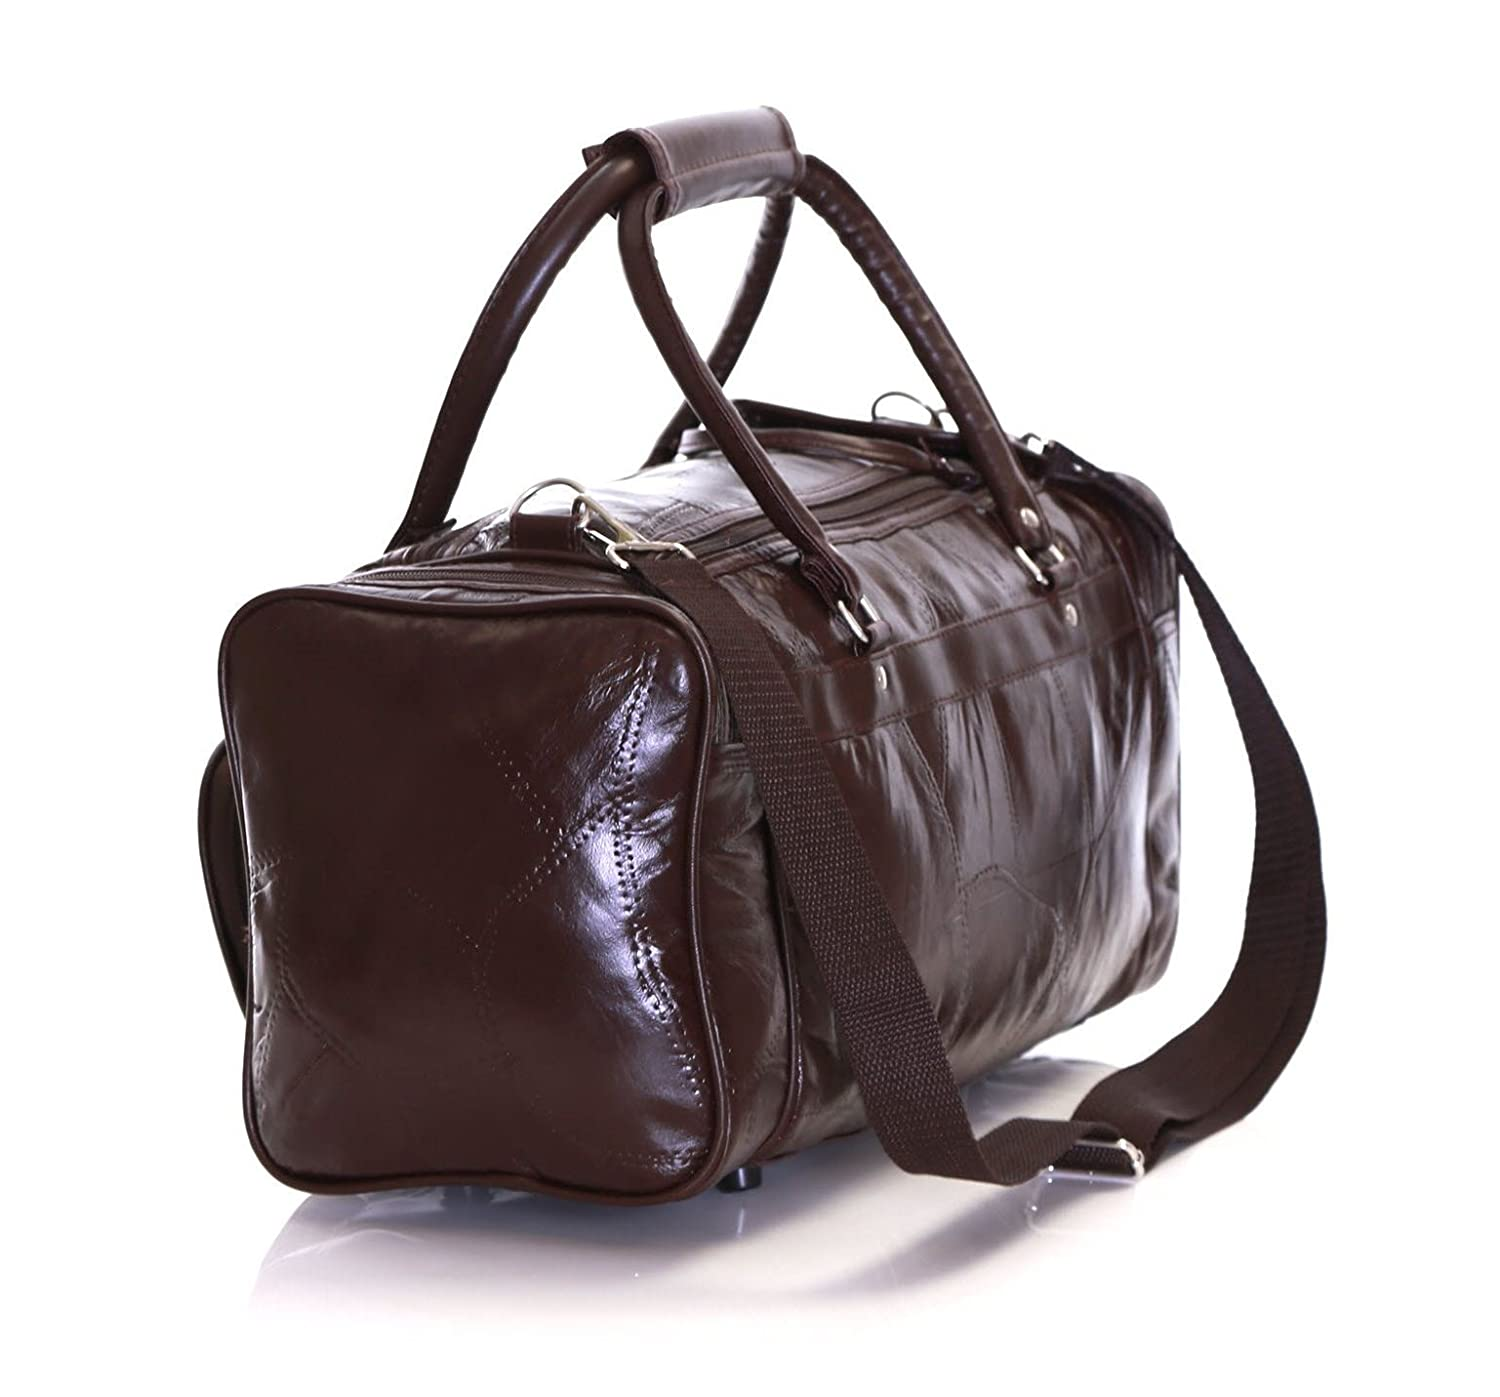 Slimbridge Malaga sac en cuir Voyage, Marron